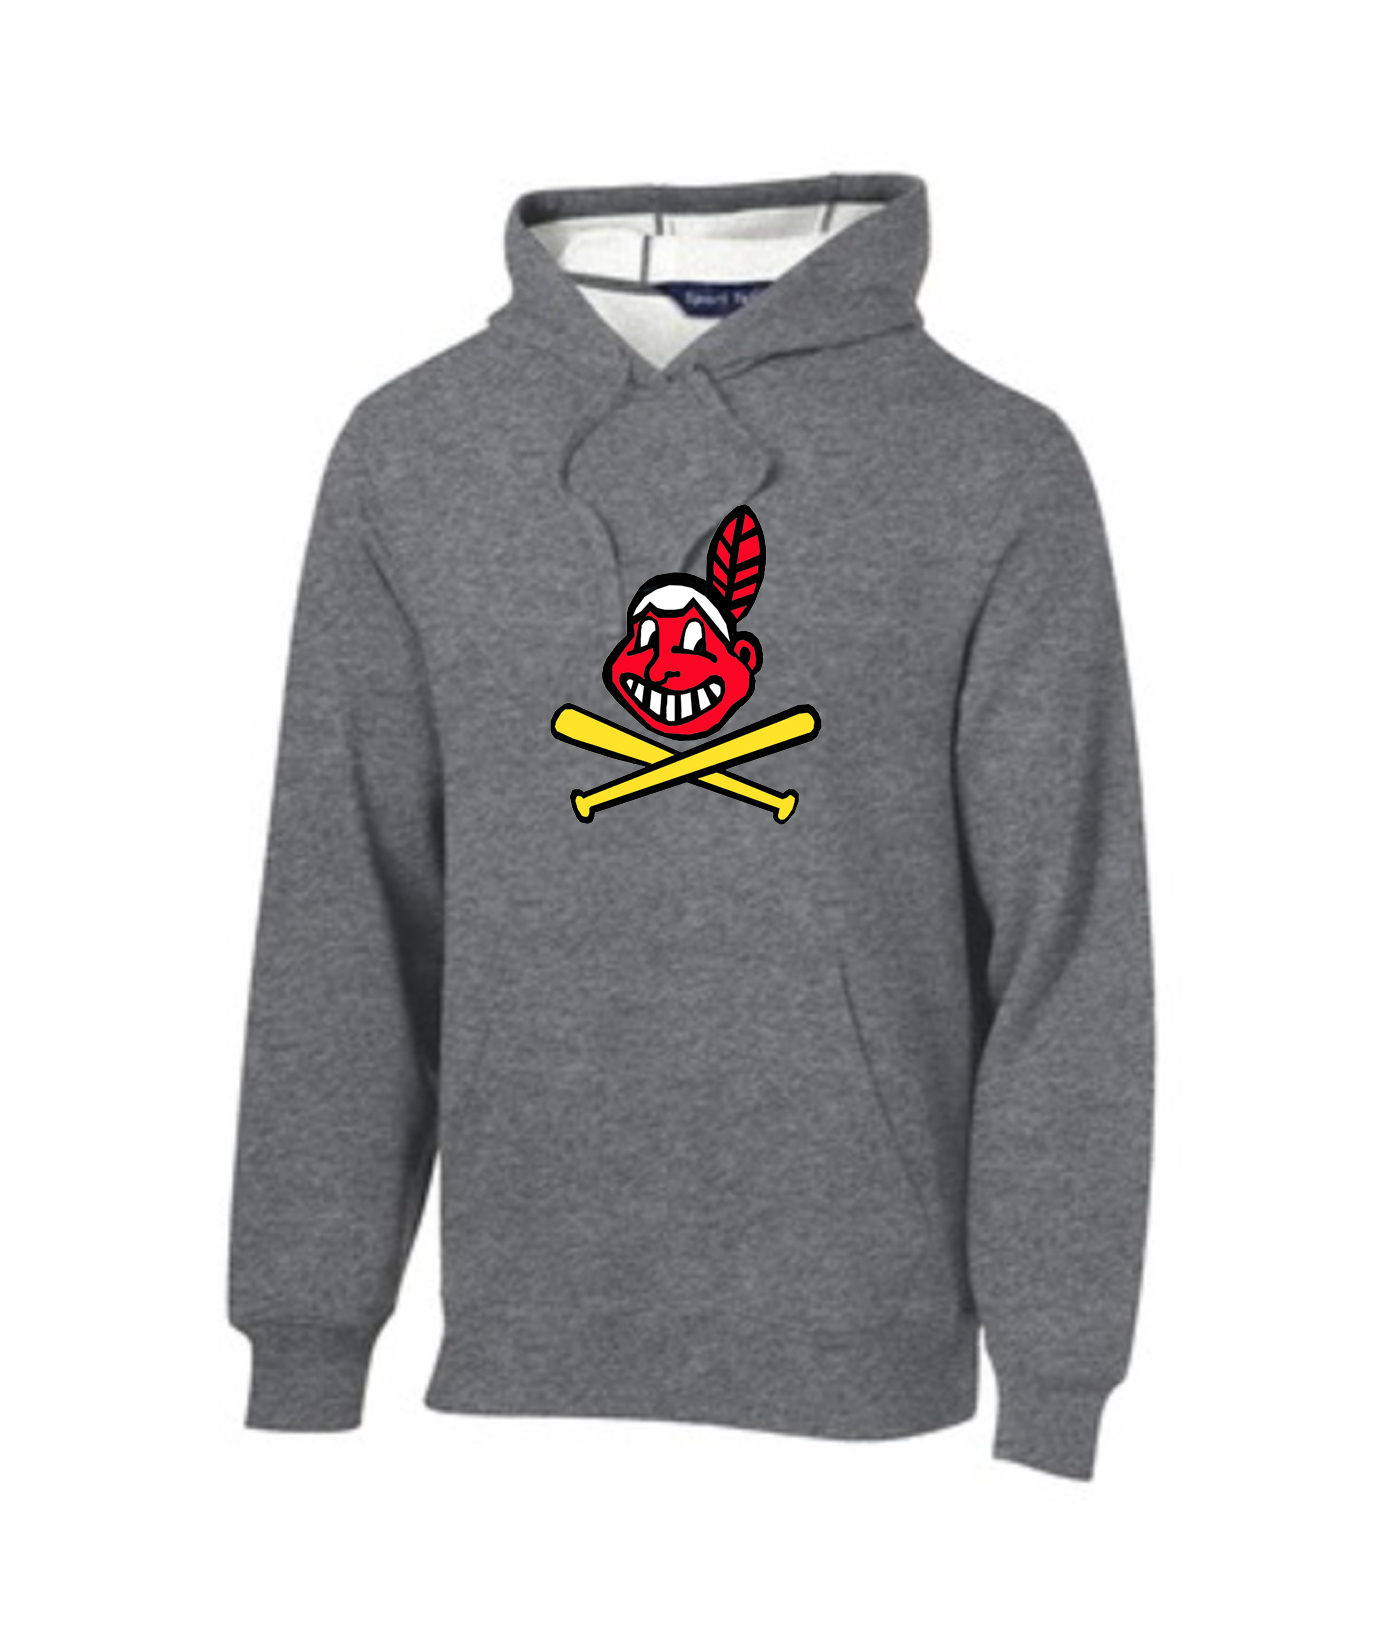 Sport-Tek Grey Pullover Hooded Sweatshirt Color Blackhawk